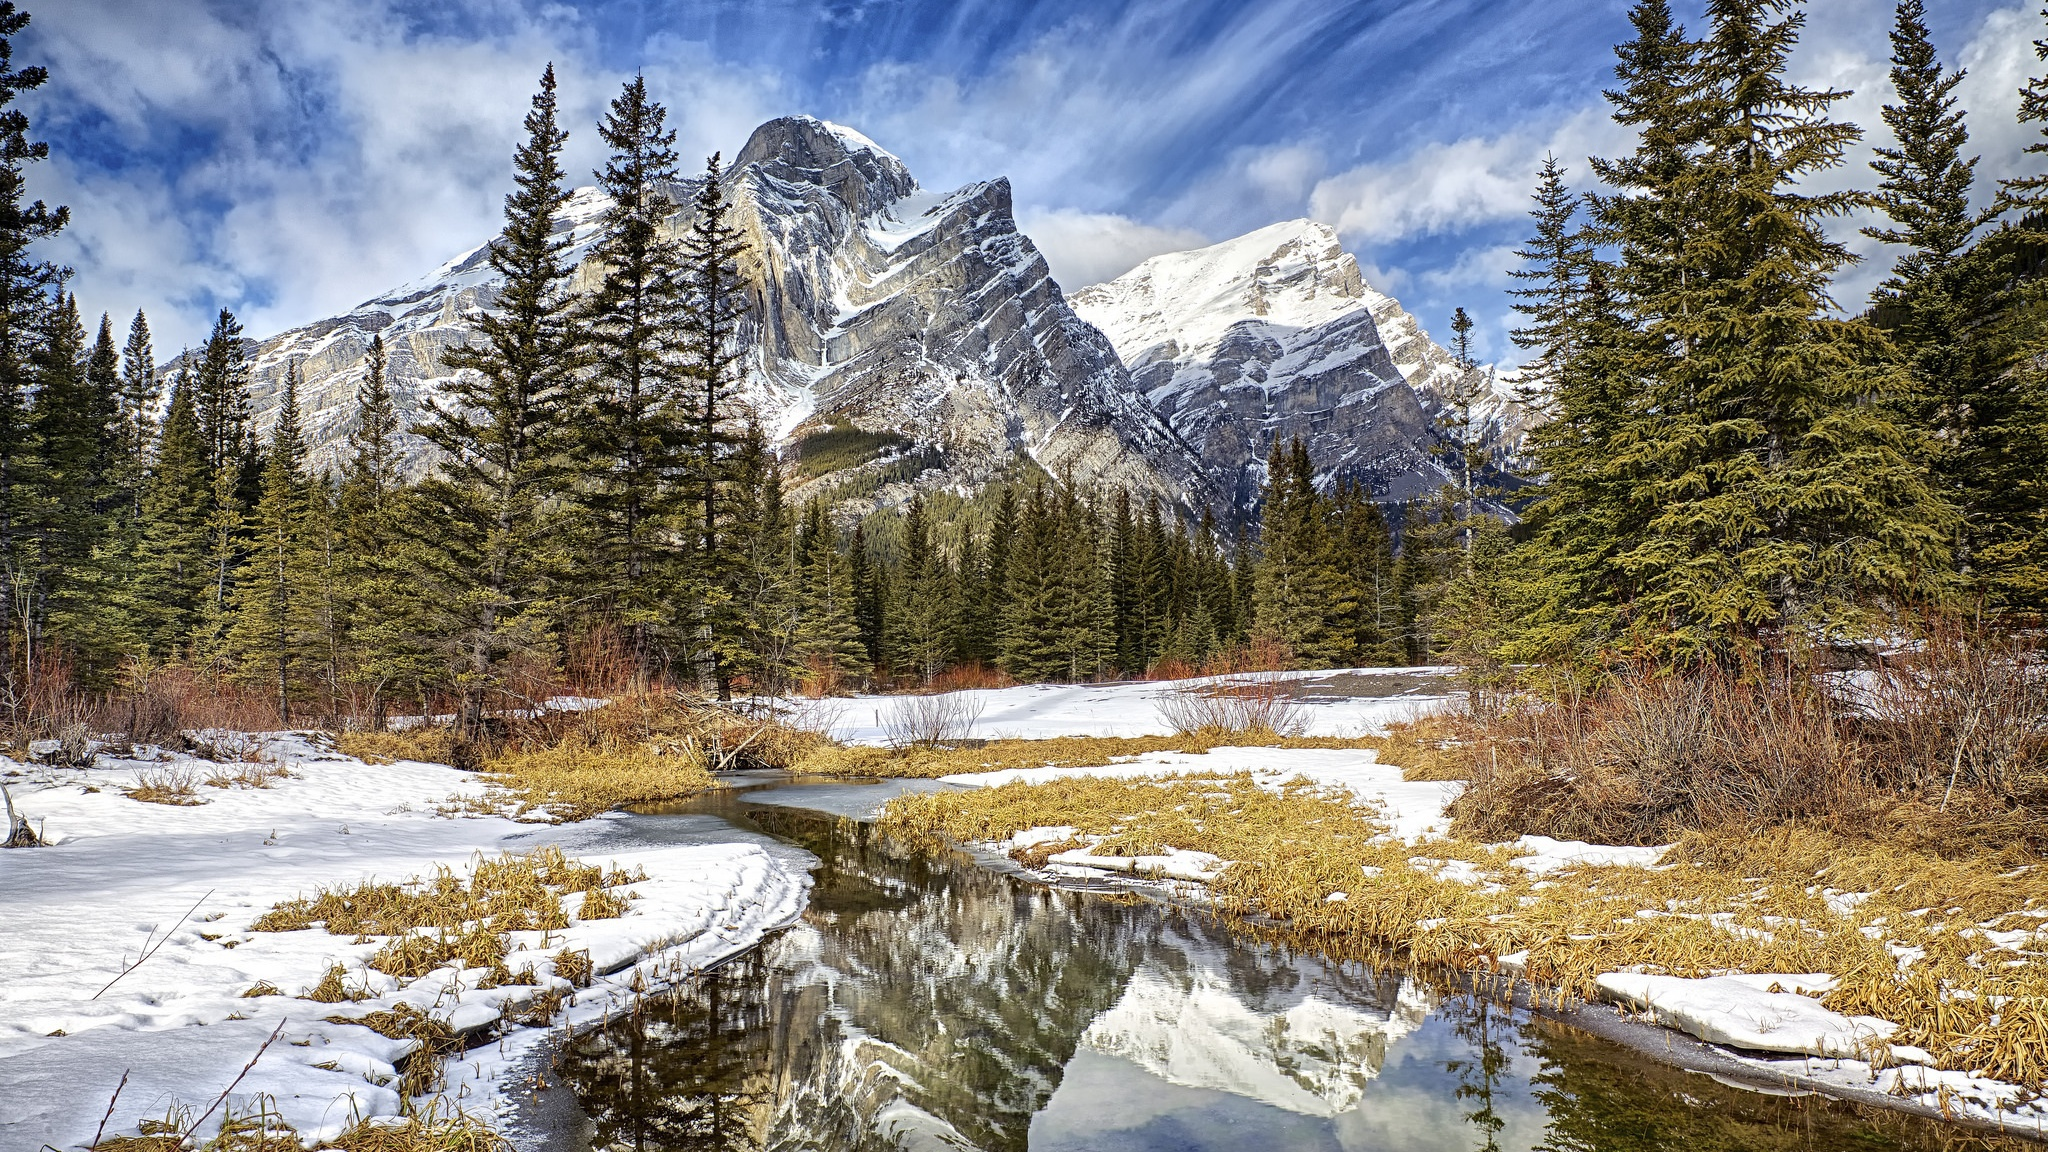 Winter Mountains Hd Desktop